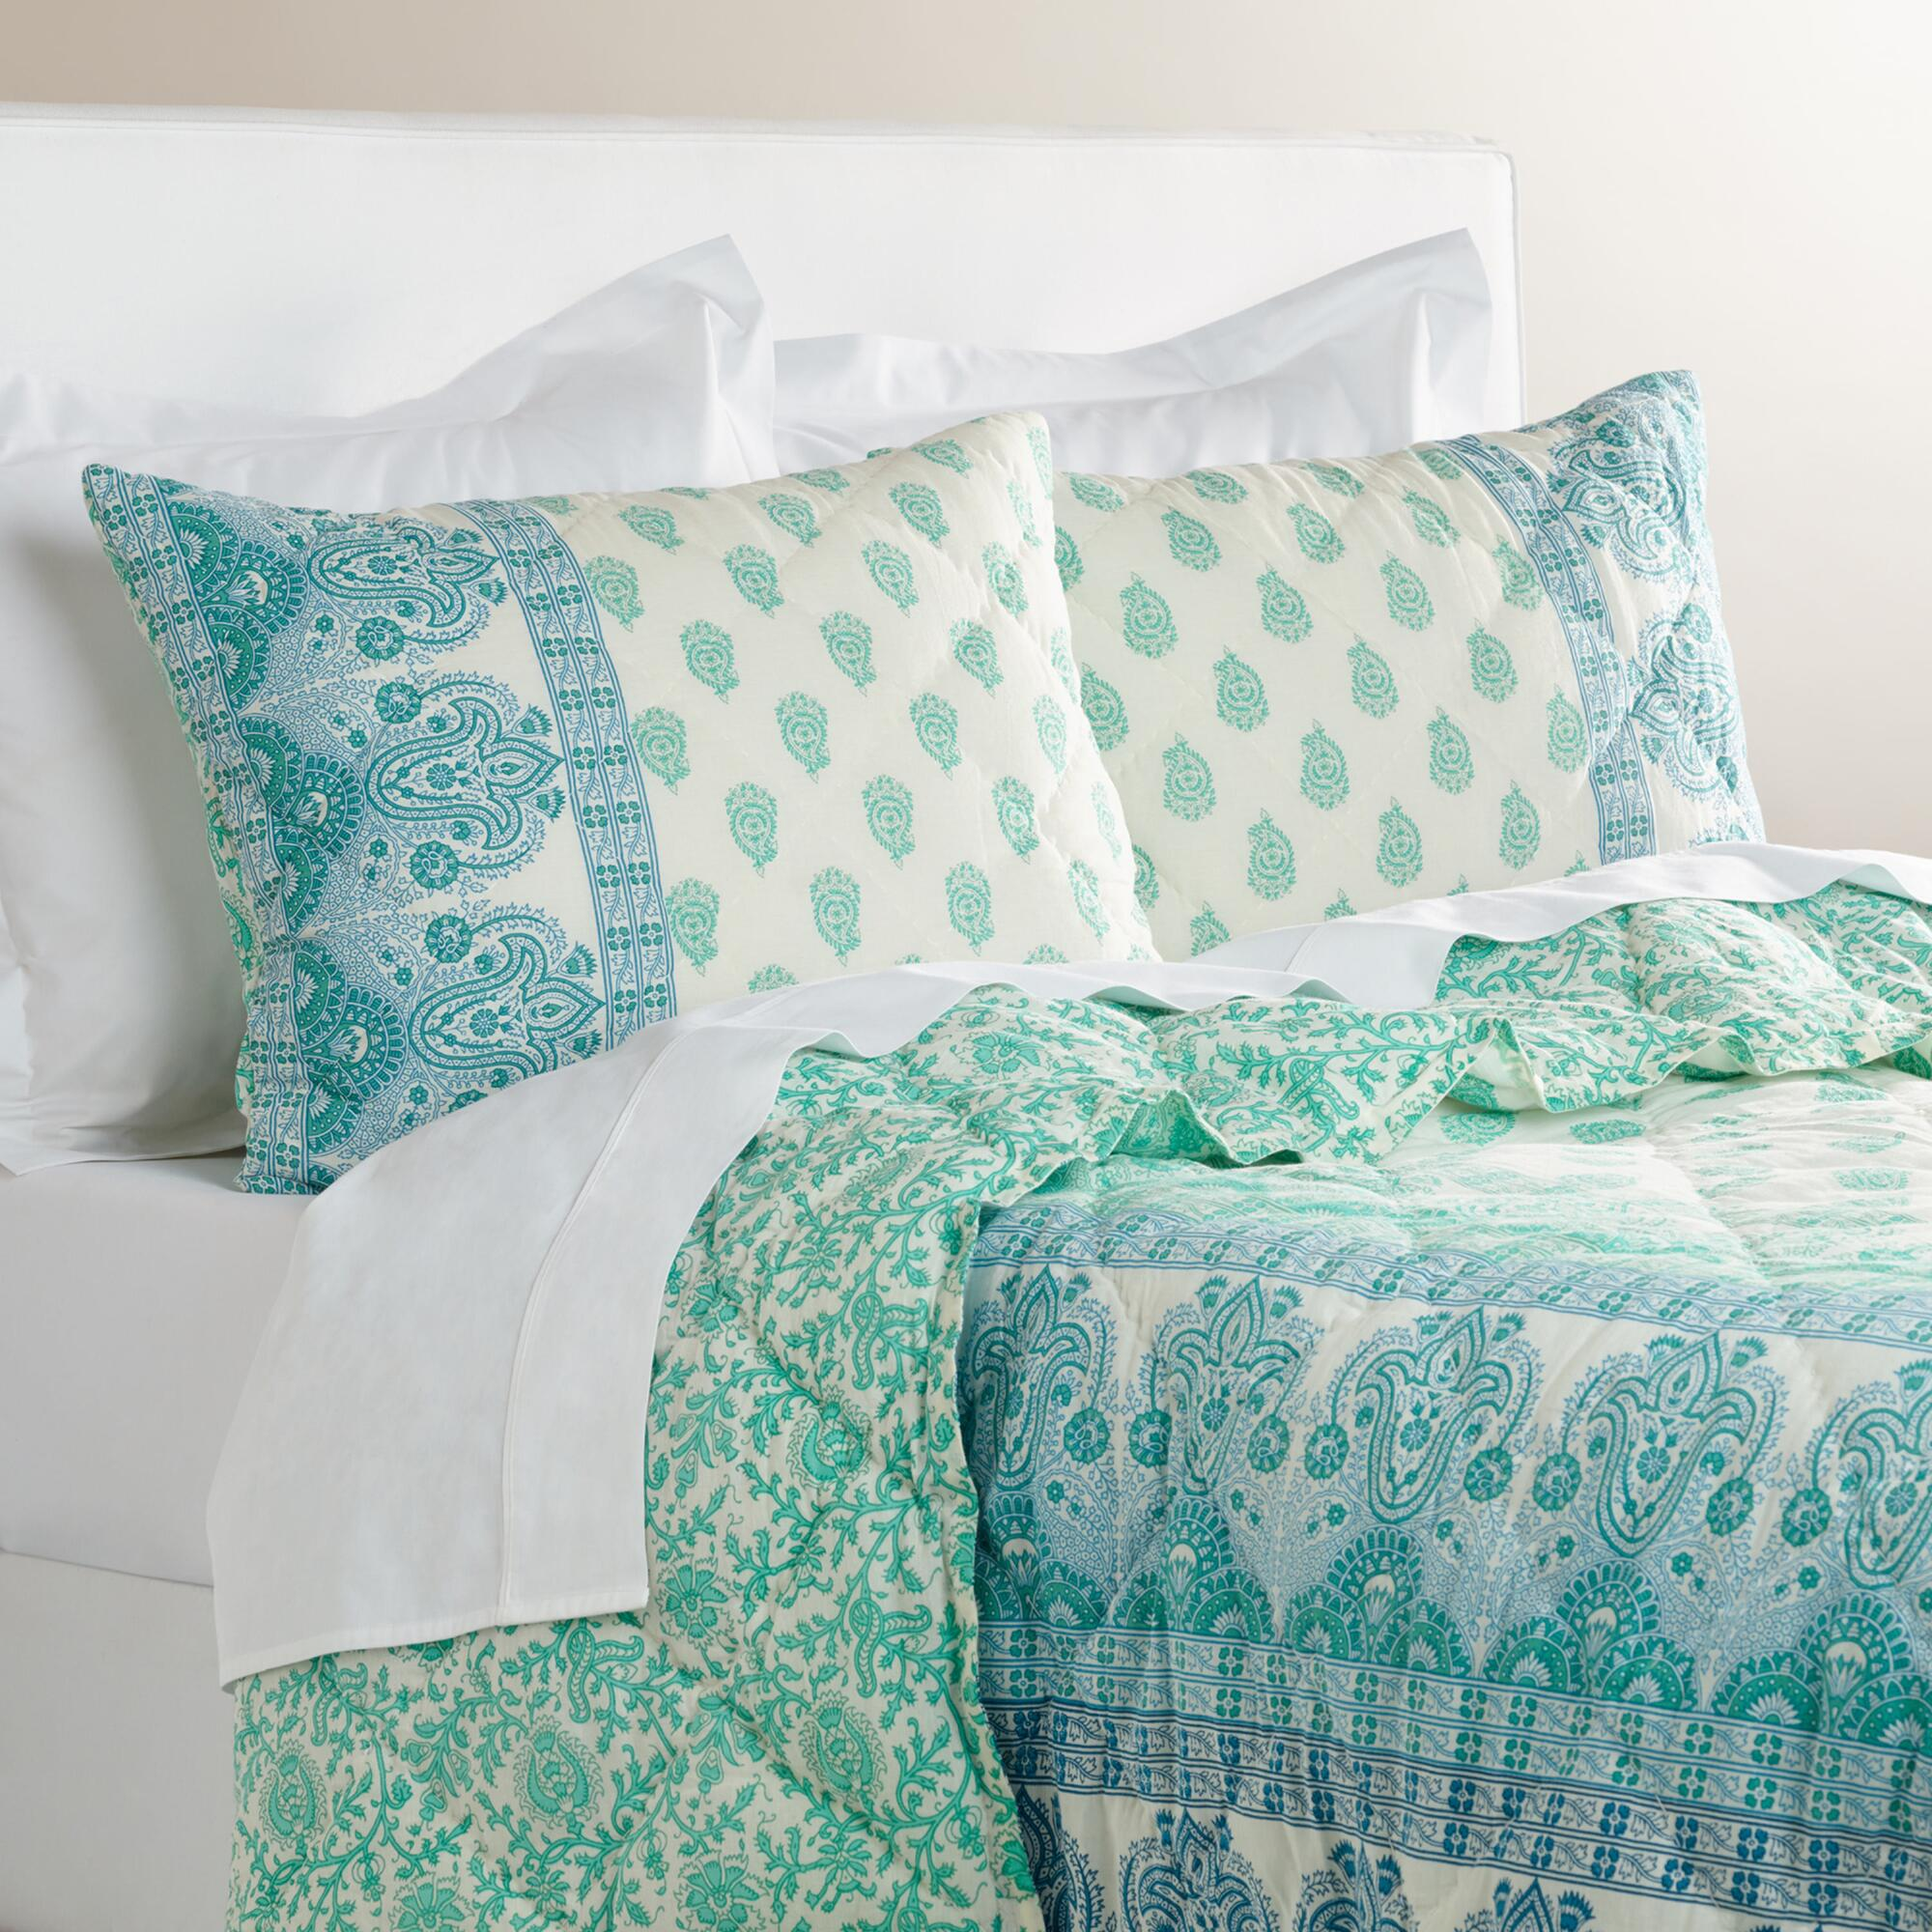 Blue and green paisley bedding - Brown And Turquoise Paisley Bedding Bedroom Decor Gallery